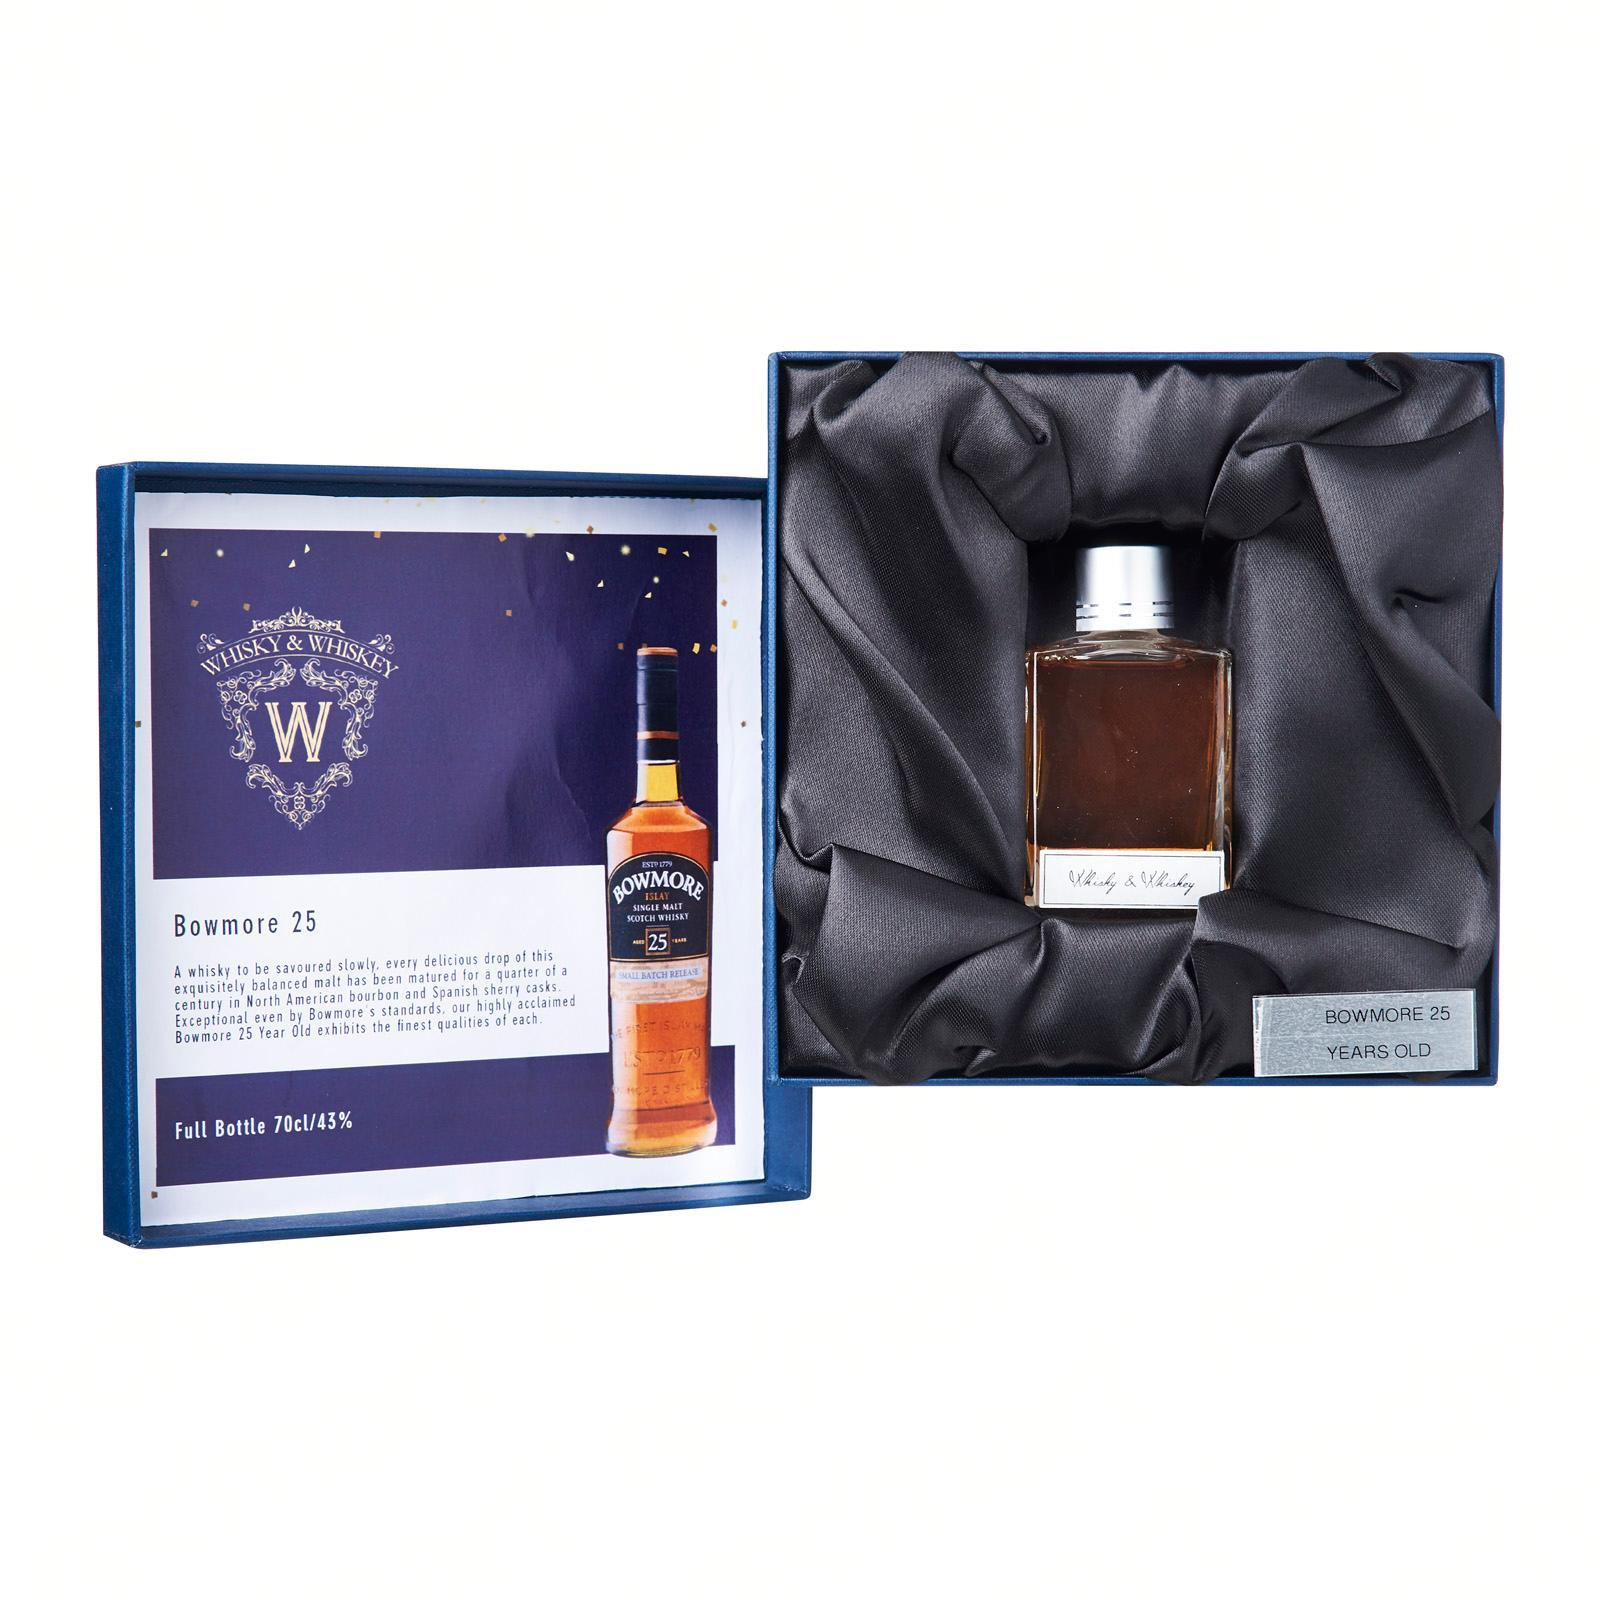 Bowmore Dram Set For Bowmore 25 Years - By The Liquor Shop Singapore